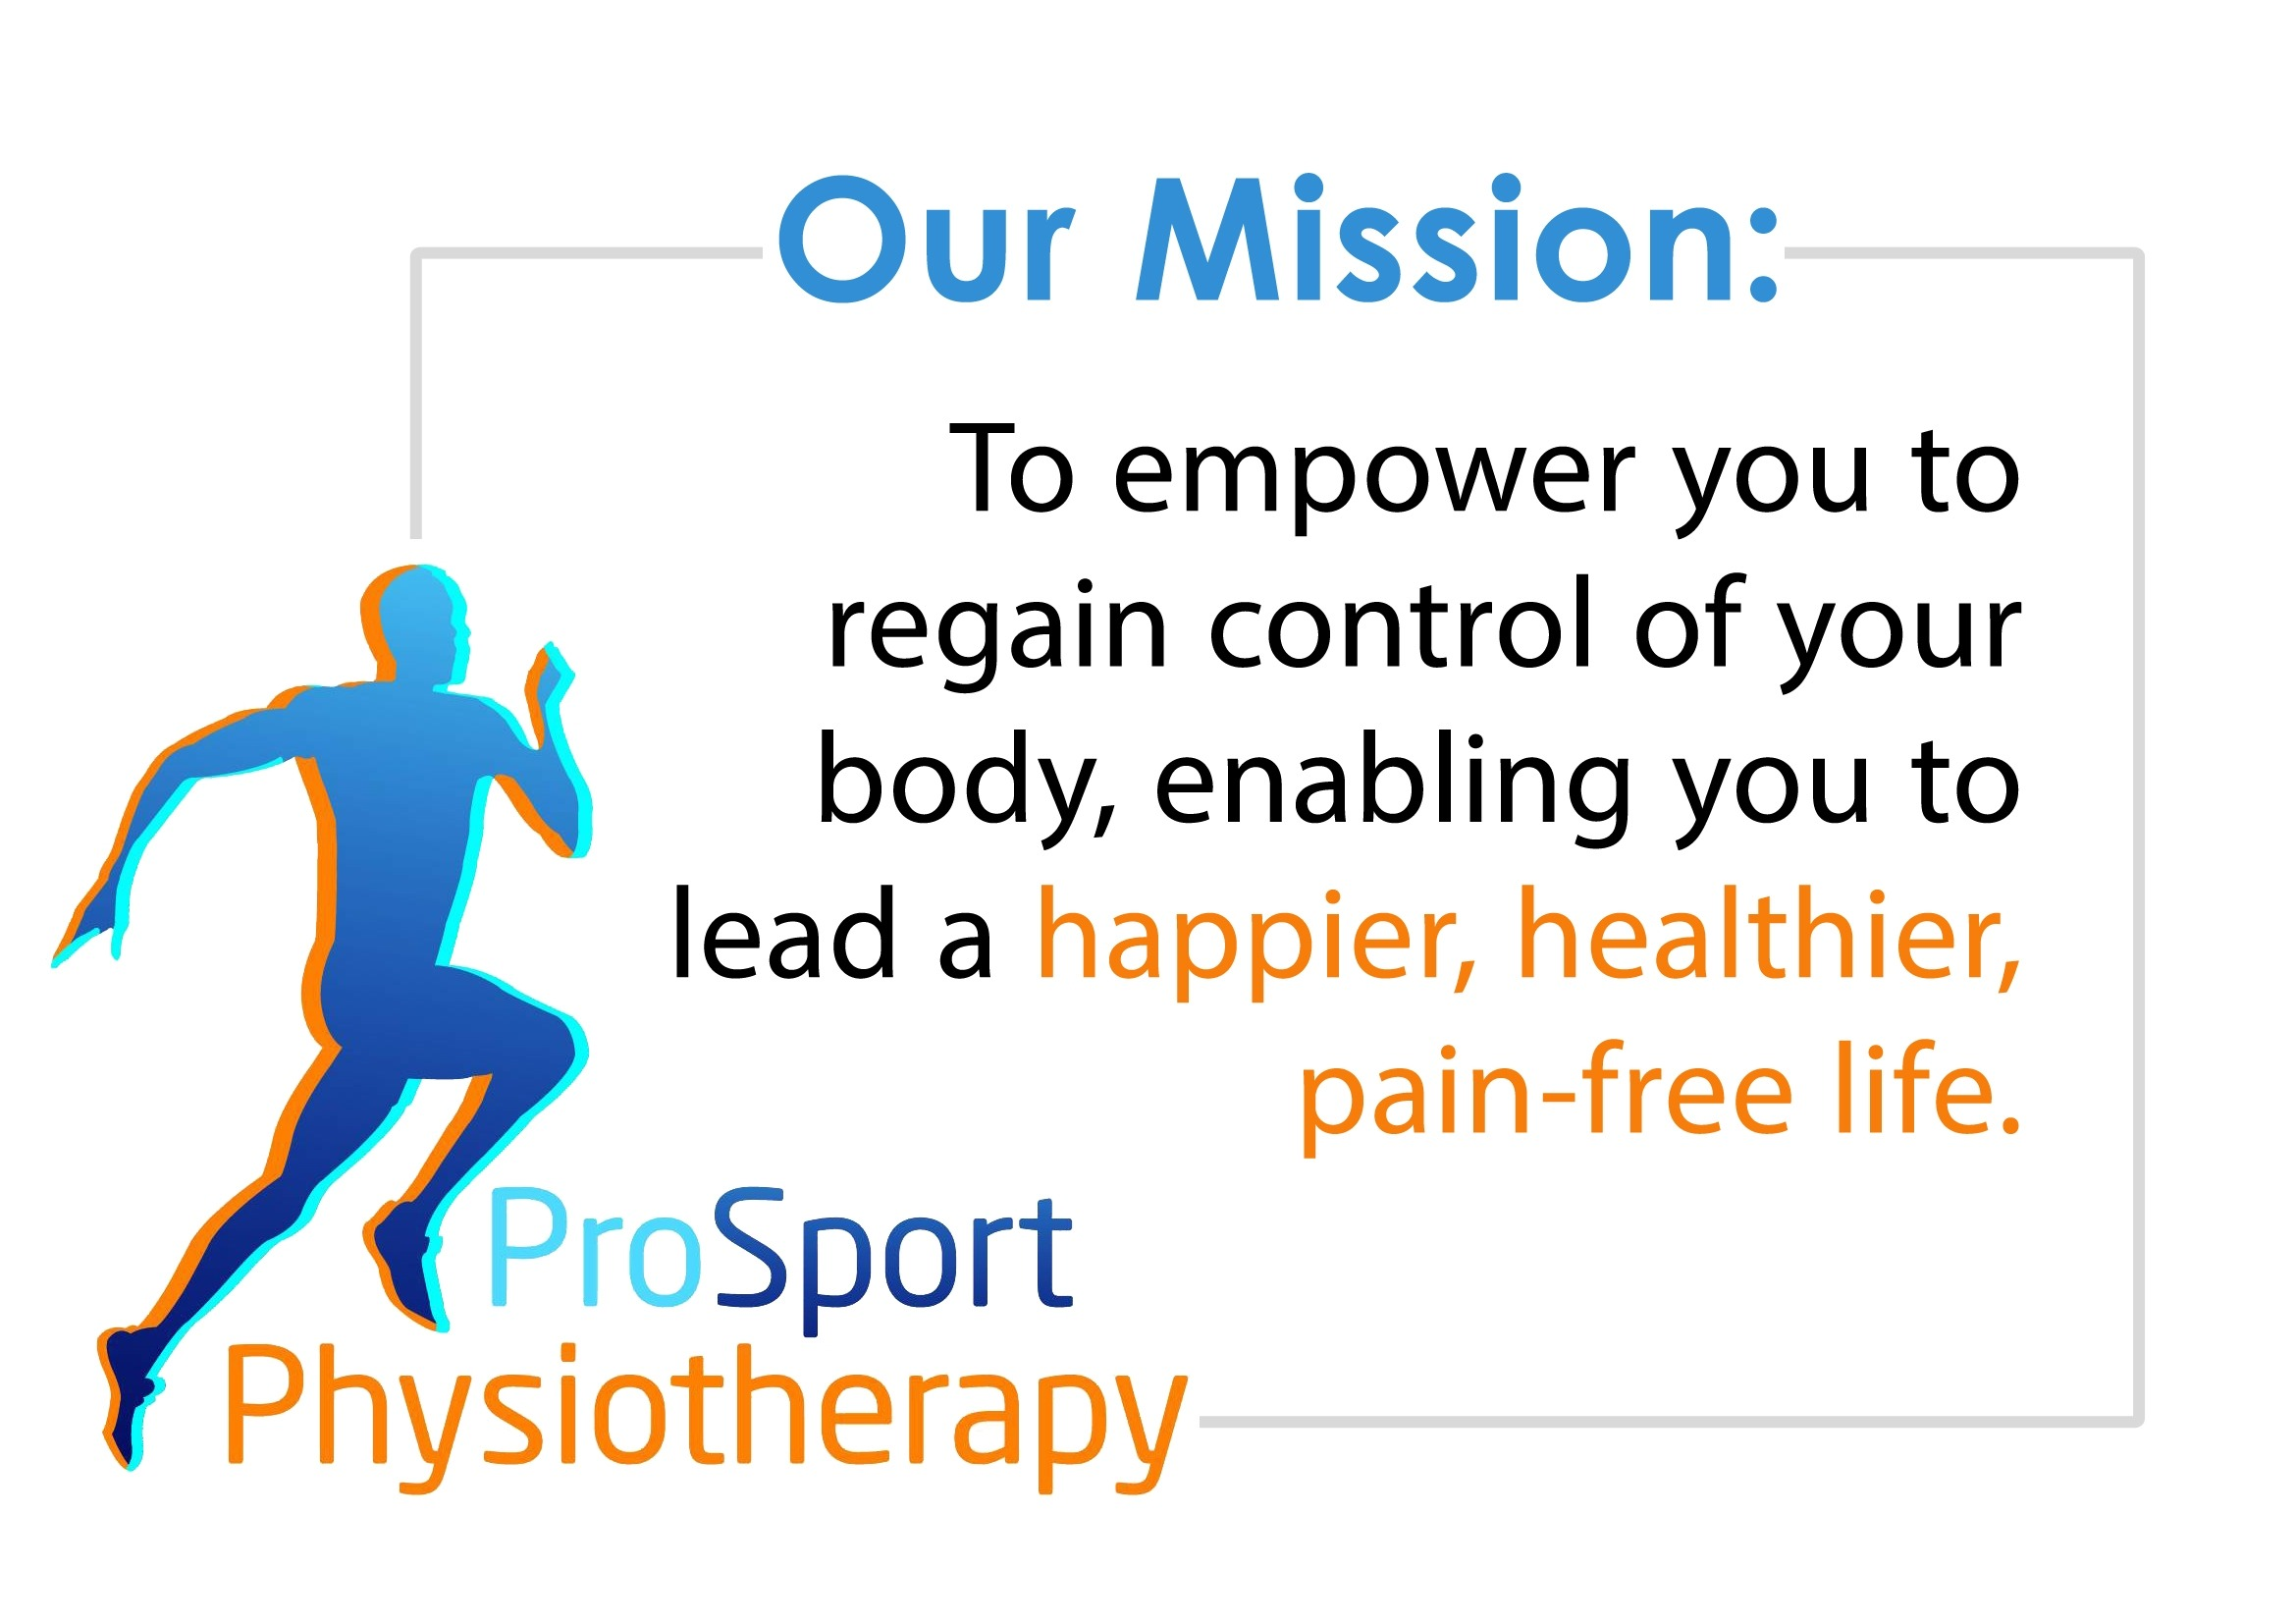 Pro Sport Physiotherapy mission to help relief pain across Huddersfield and the World